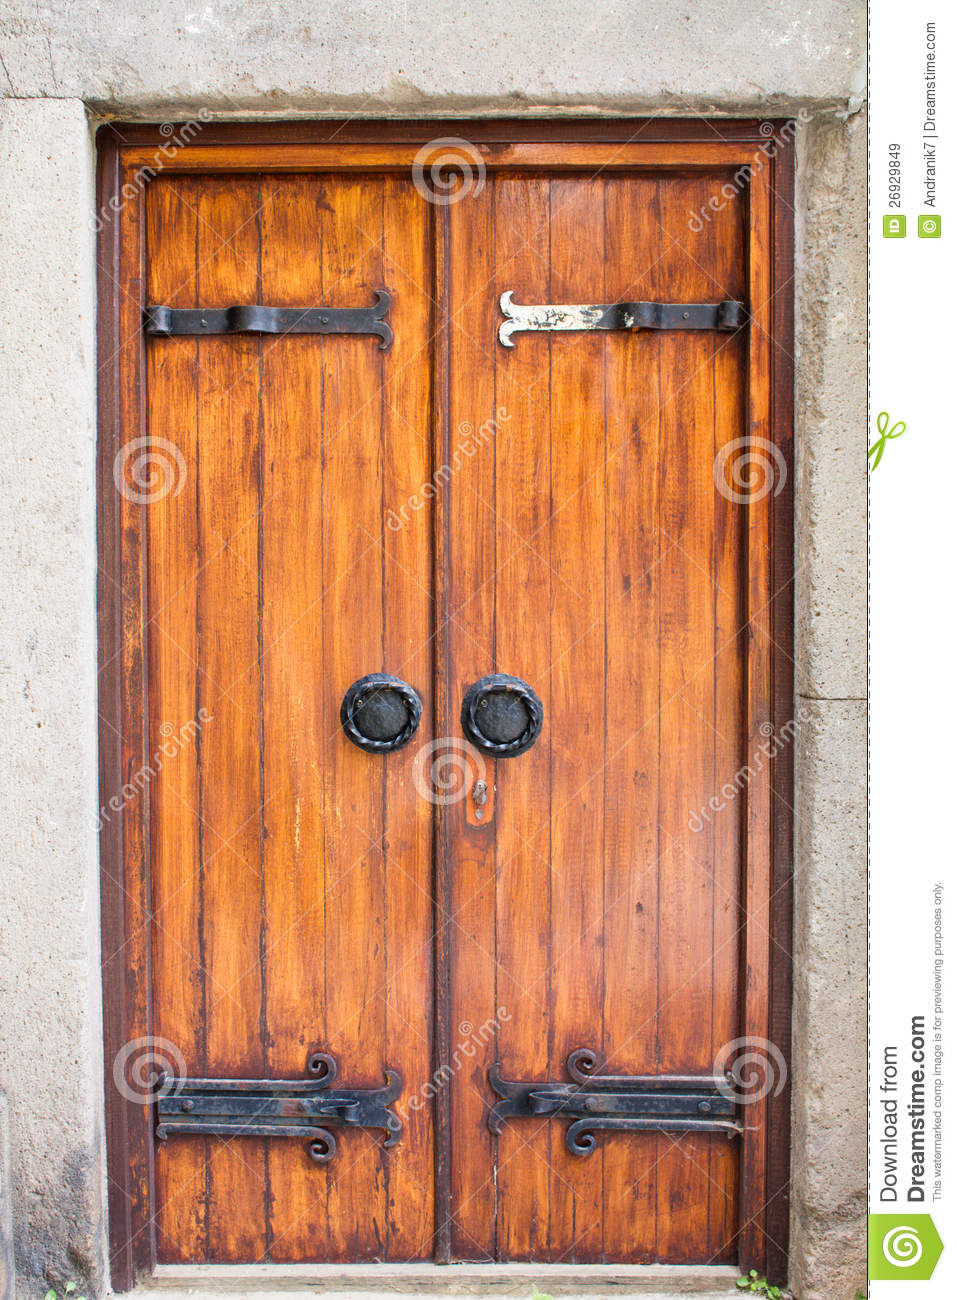 Attrayant Download Old Fashioned Door Stock Image. Image Of Metalwork, Architecture    26929849